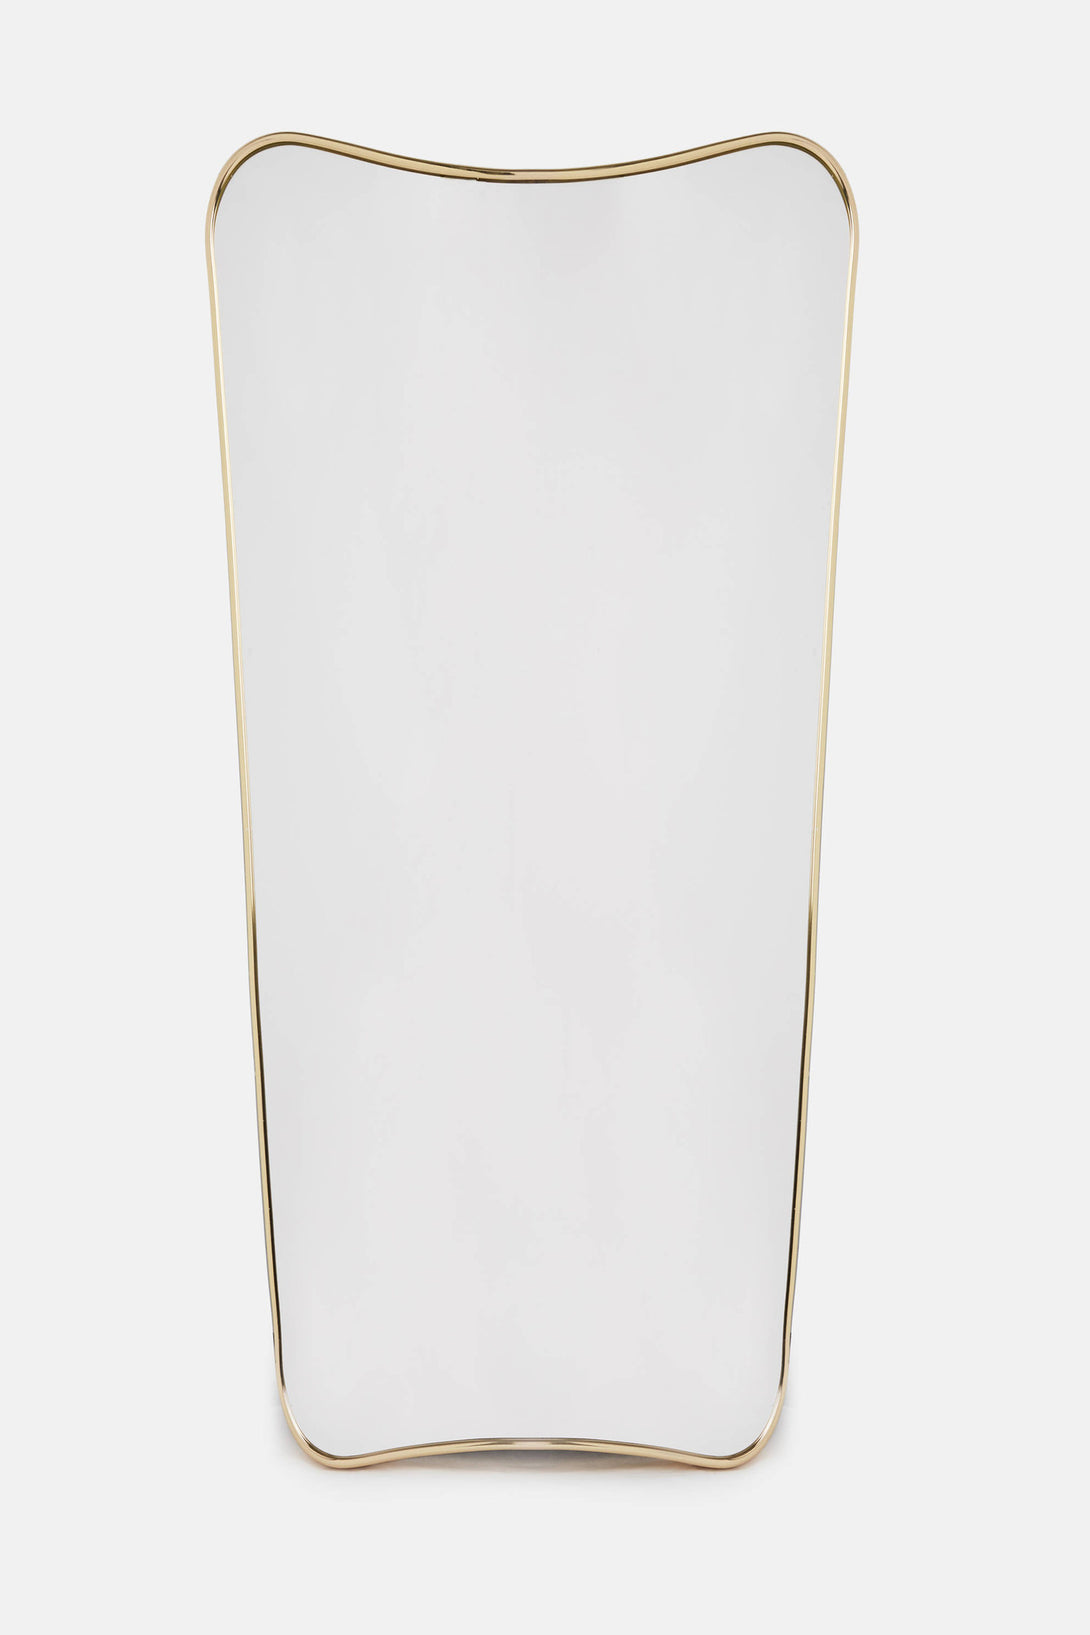 F.A. 33 Full-Length Wall Mirror by Gio Ponti